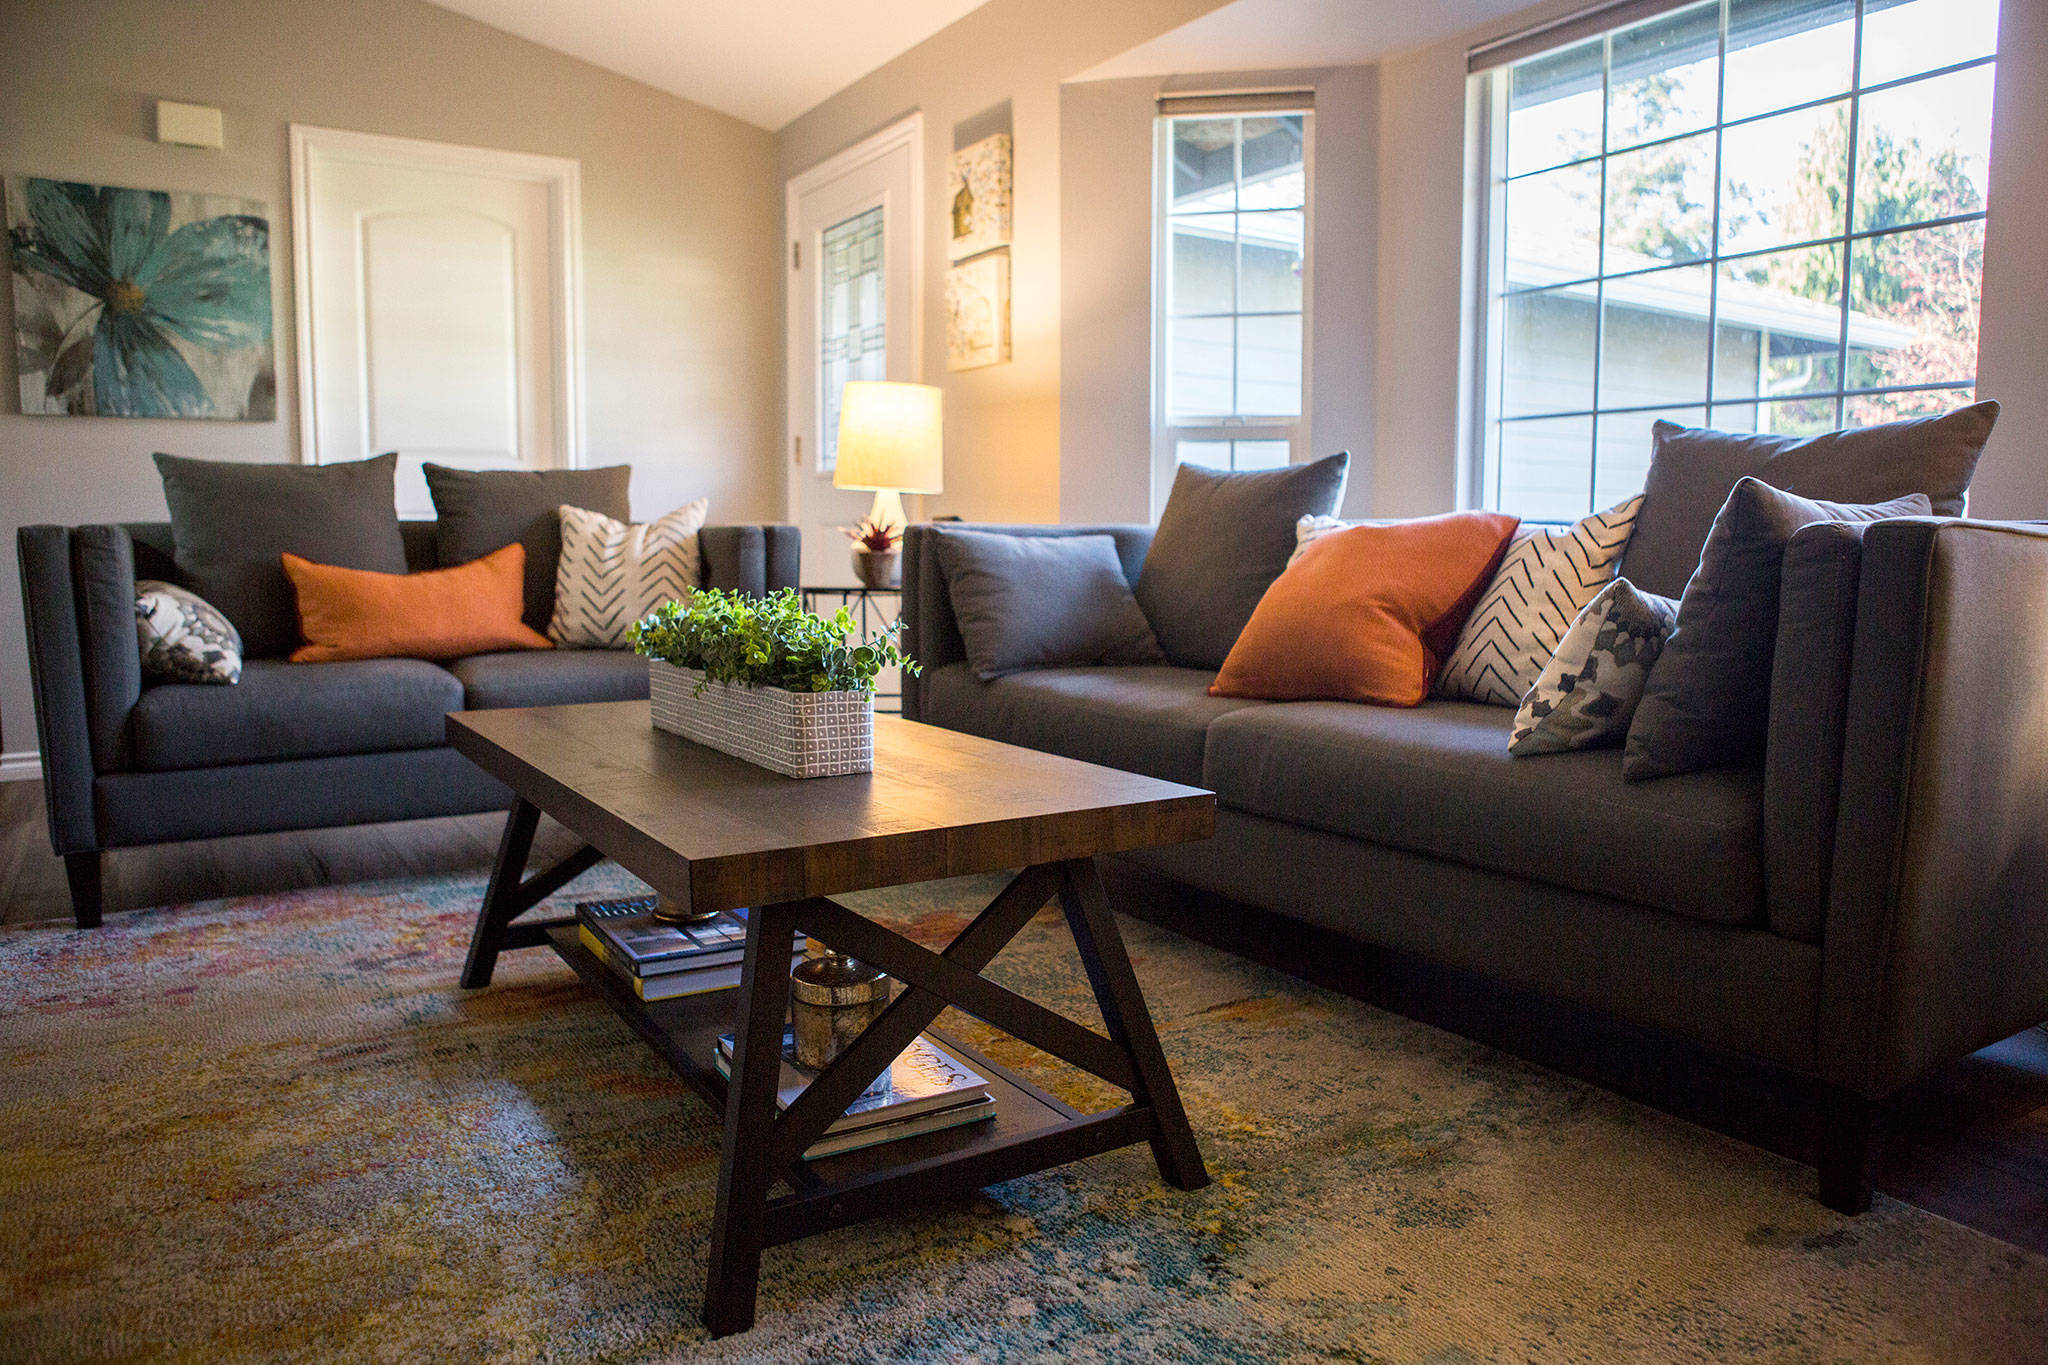 The Living Room Space Of The Hendersonu0027s Home Was Decorated By Kelly  DuByne, Of Distinctive